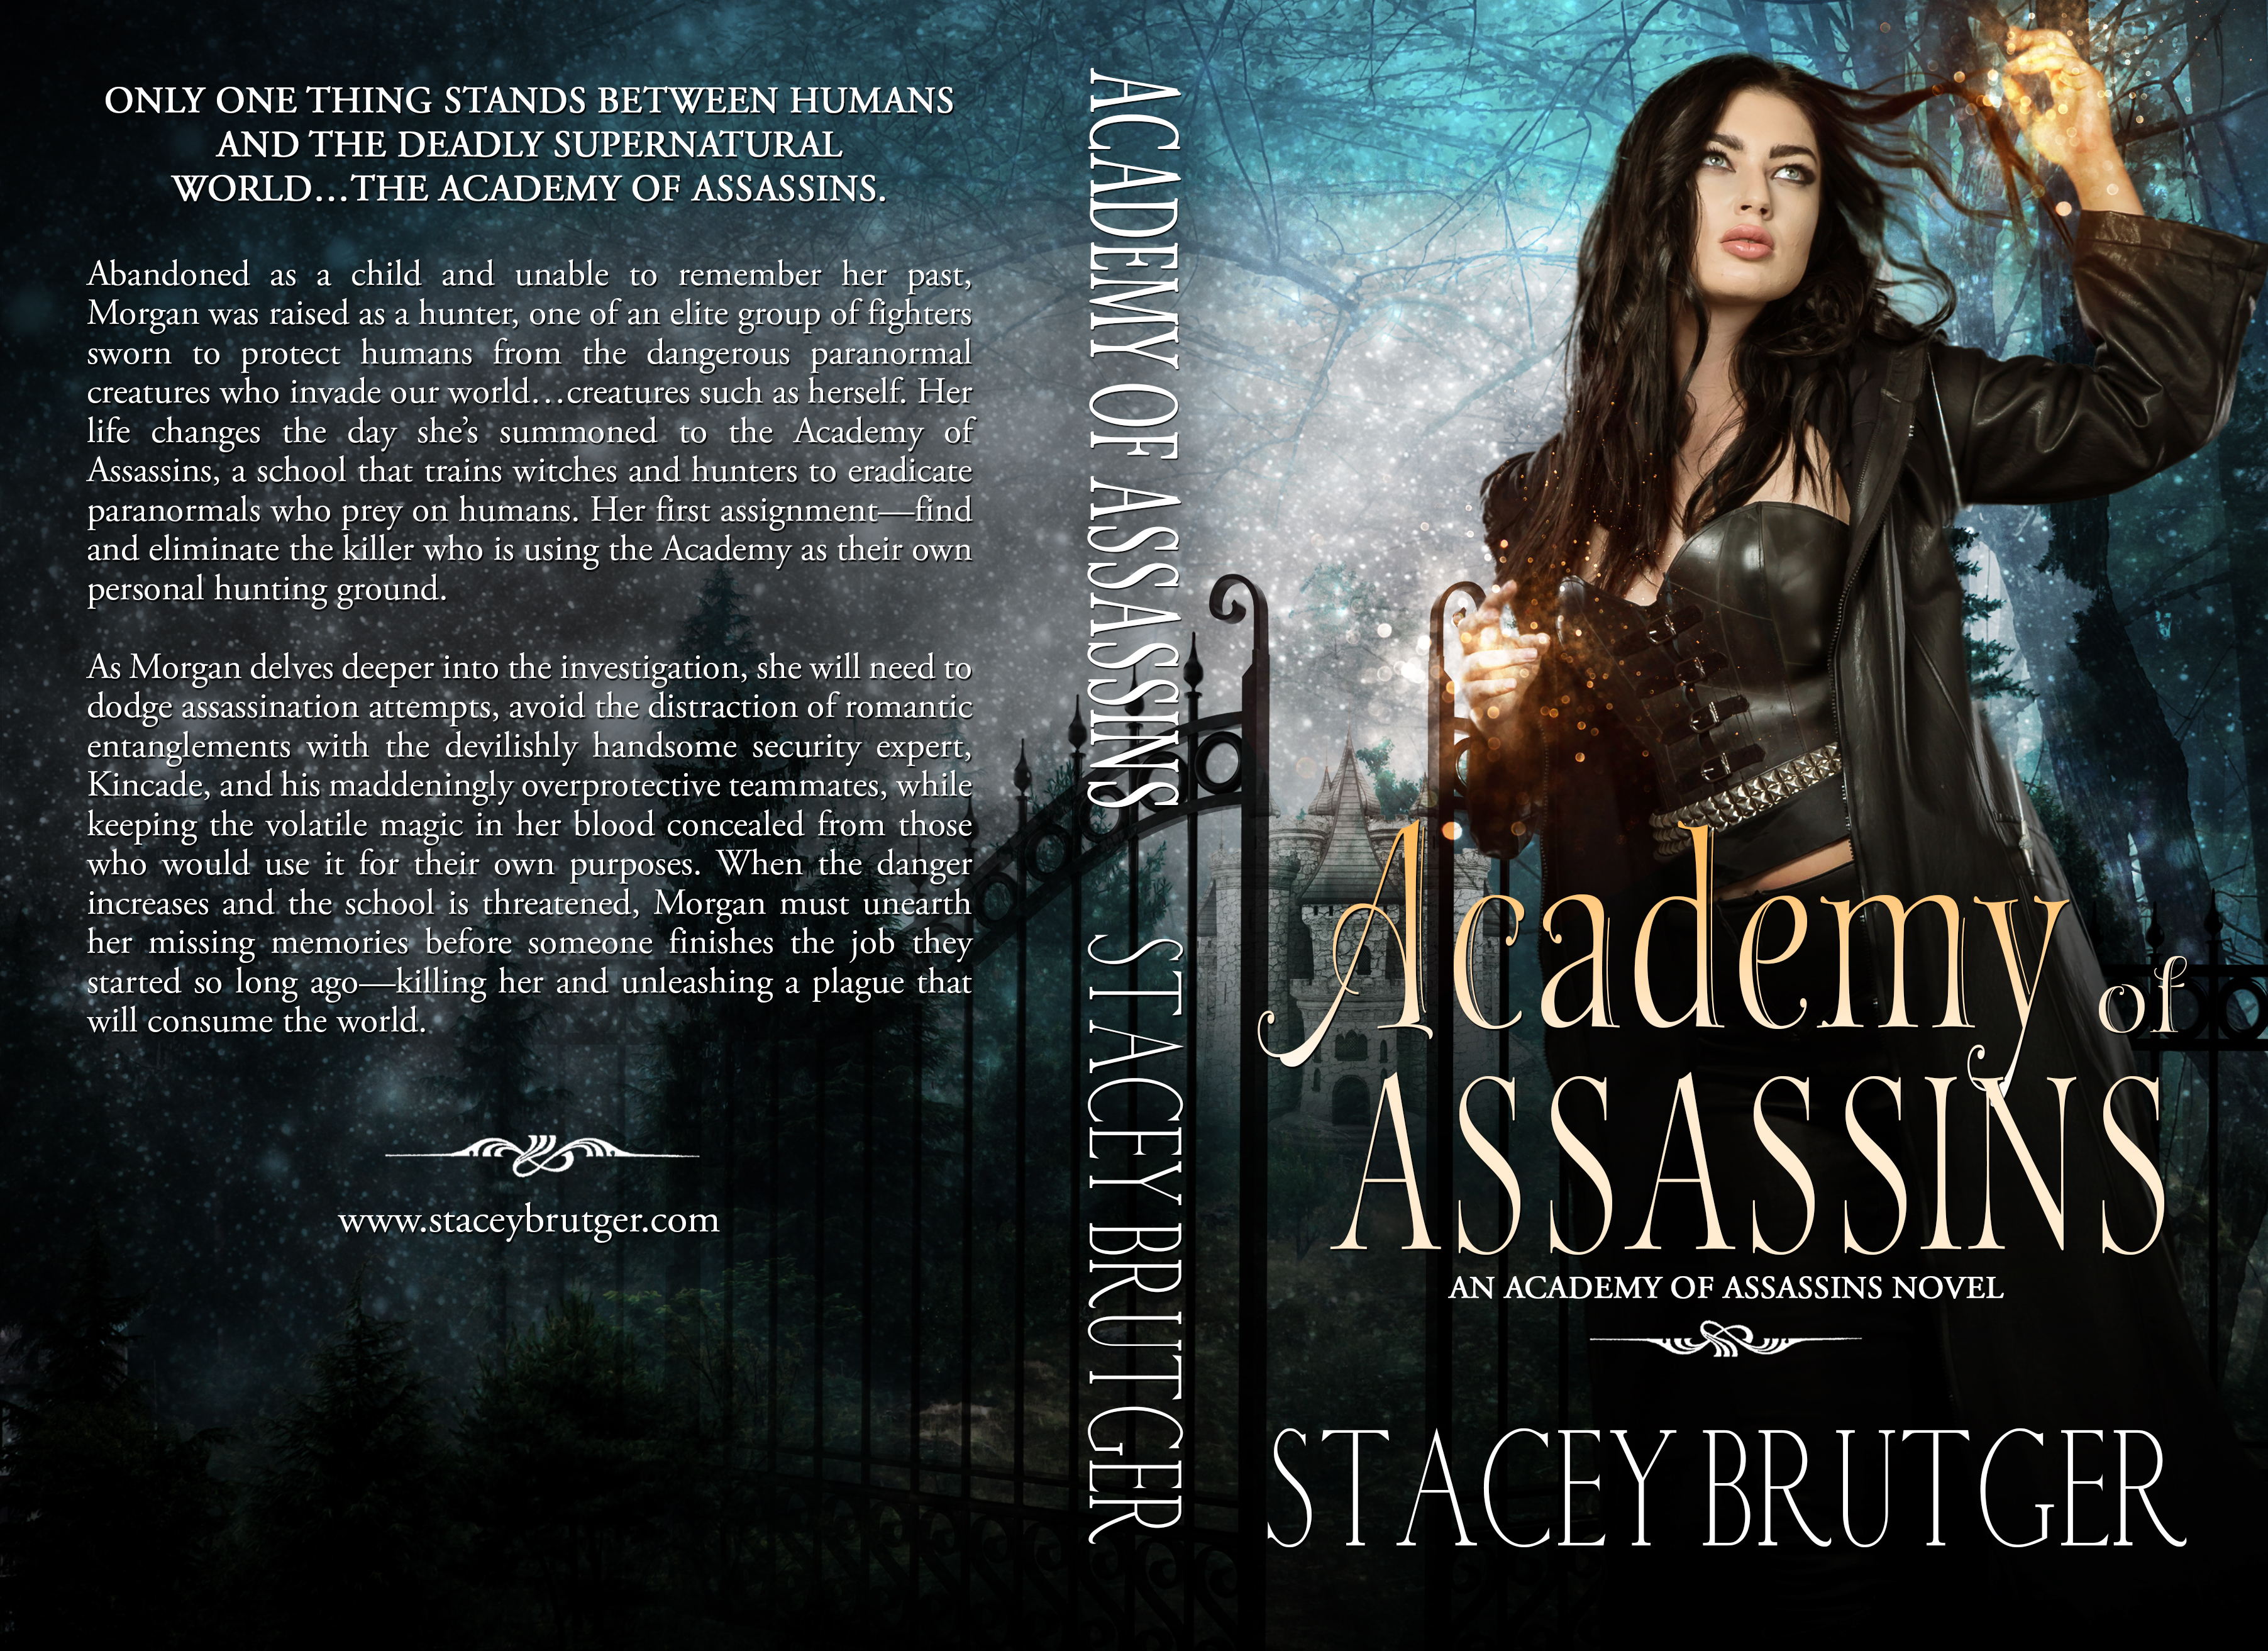 Academy of Assassins Print Cover by Stacey Brutger